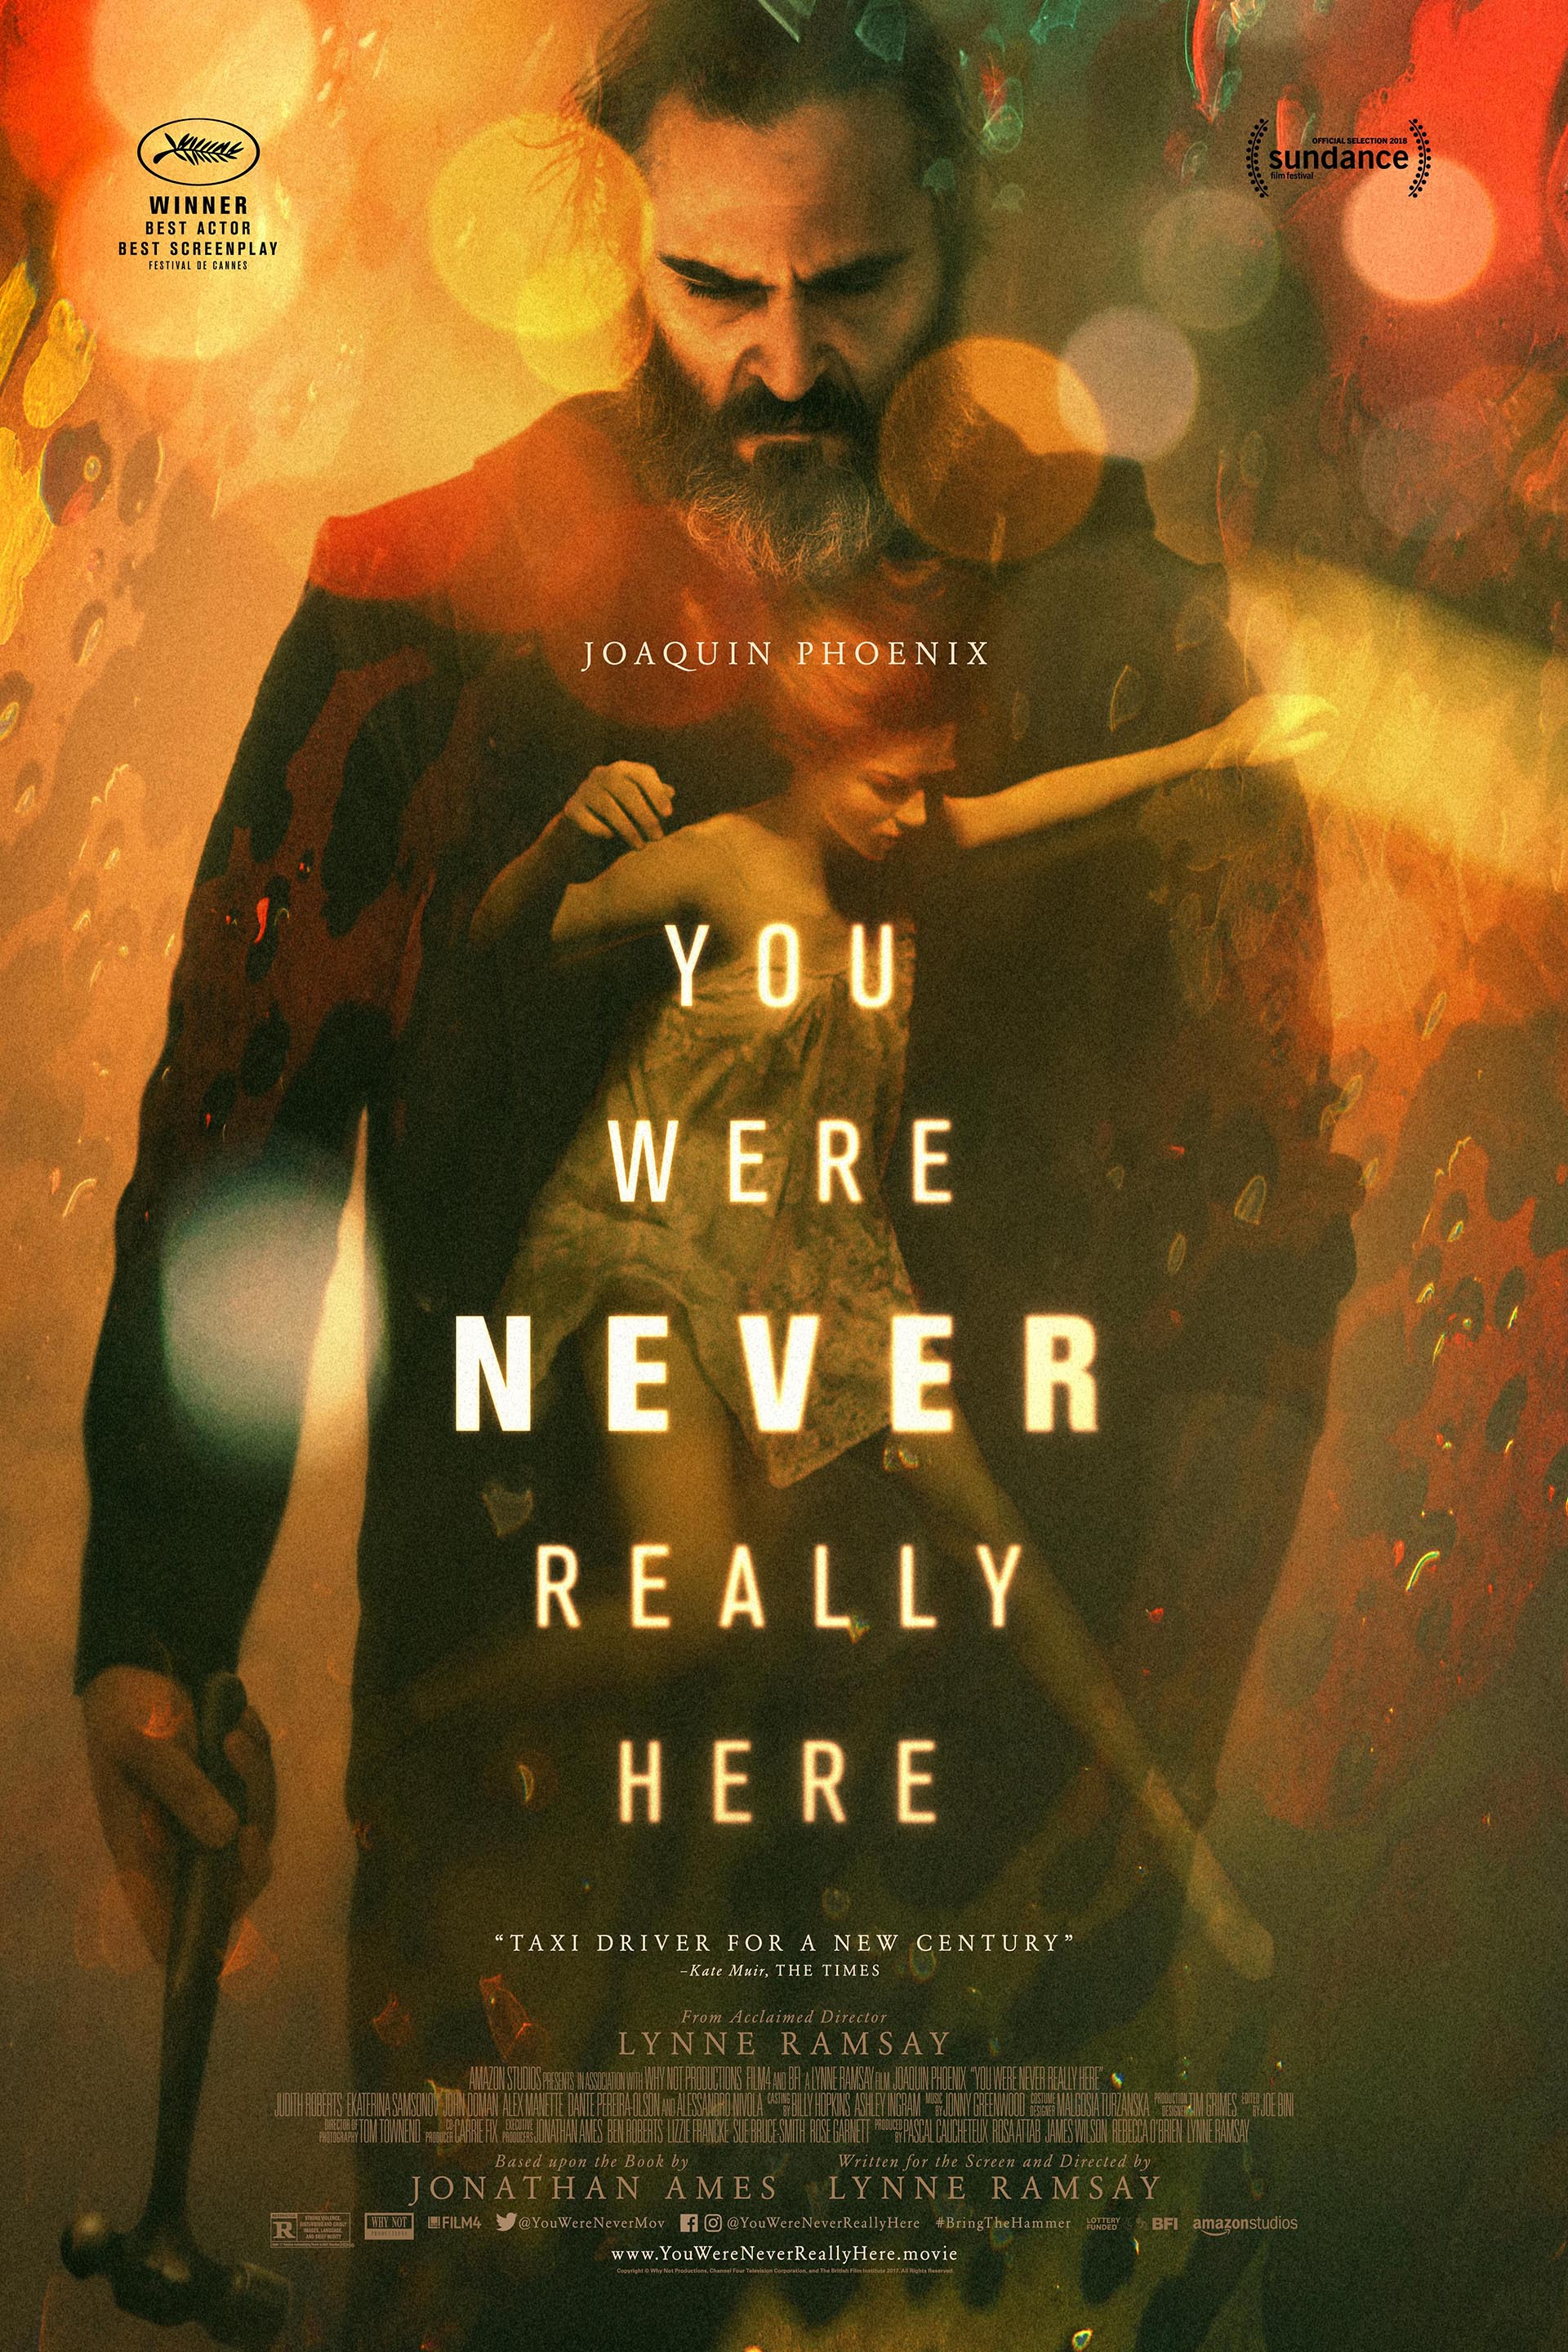 Angel Eyes 1993 Full Movie Online you were never really here now available on demand!